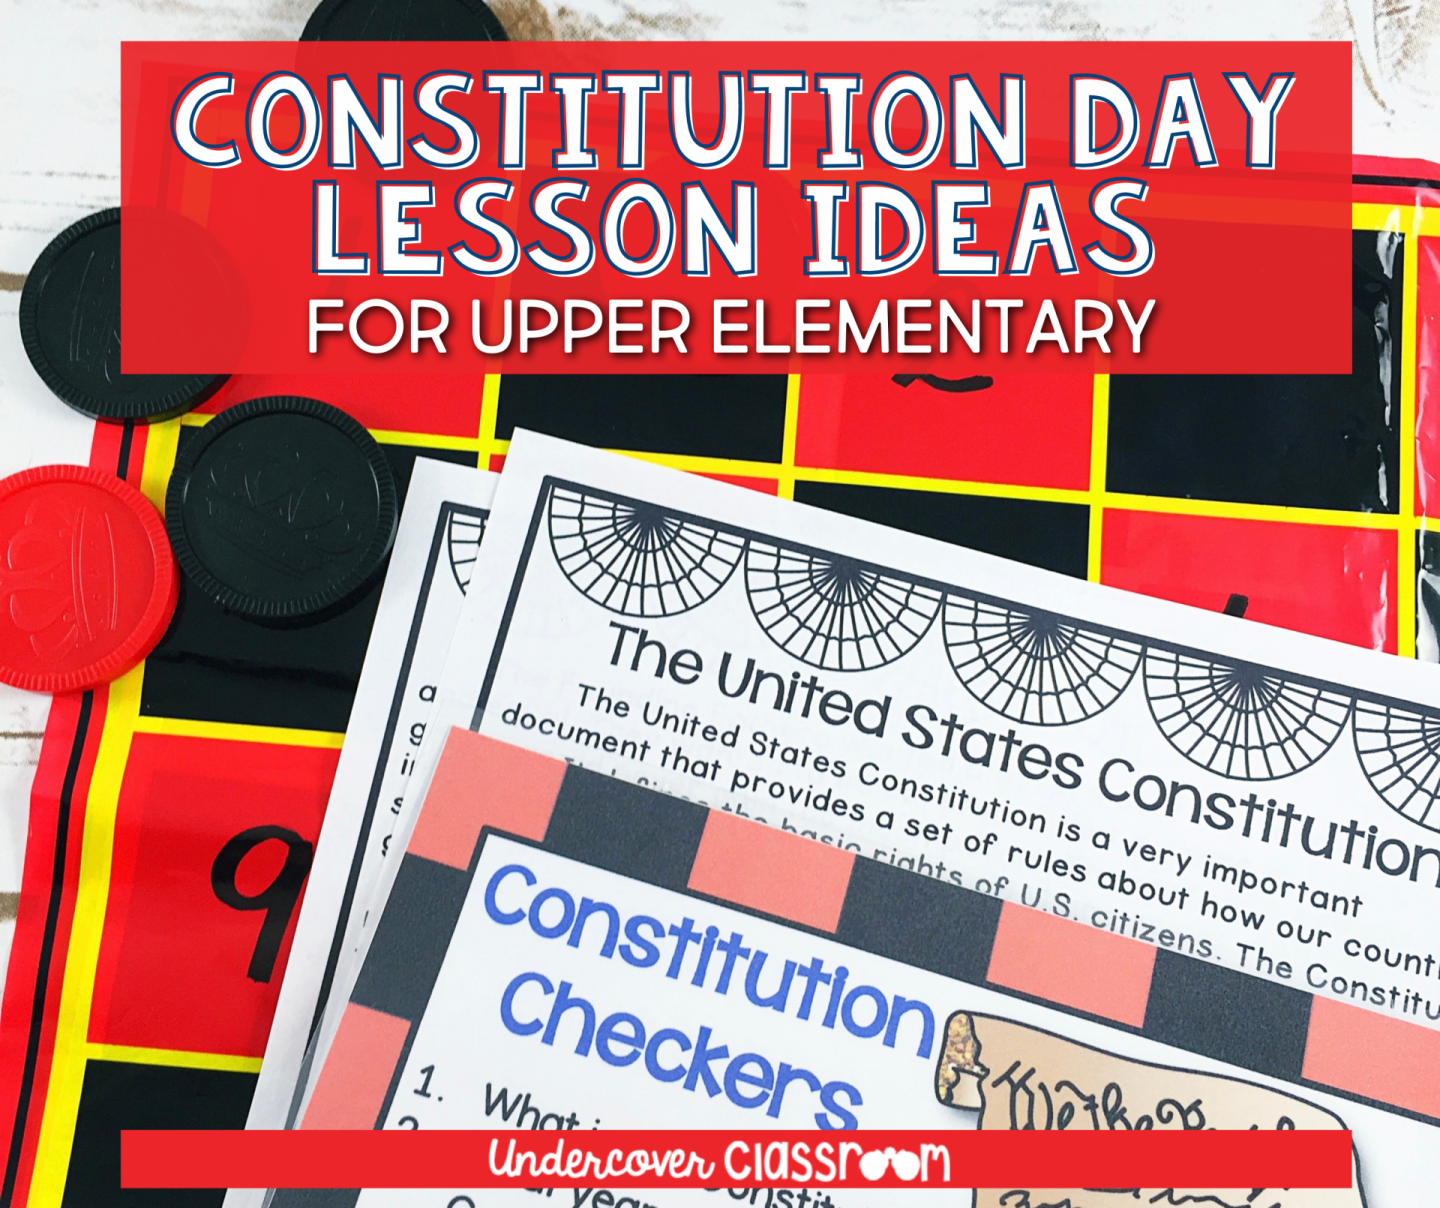 Constitution Day Lesson Ideas